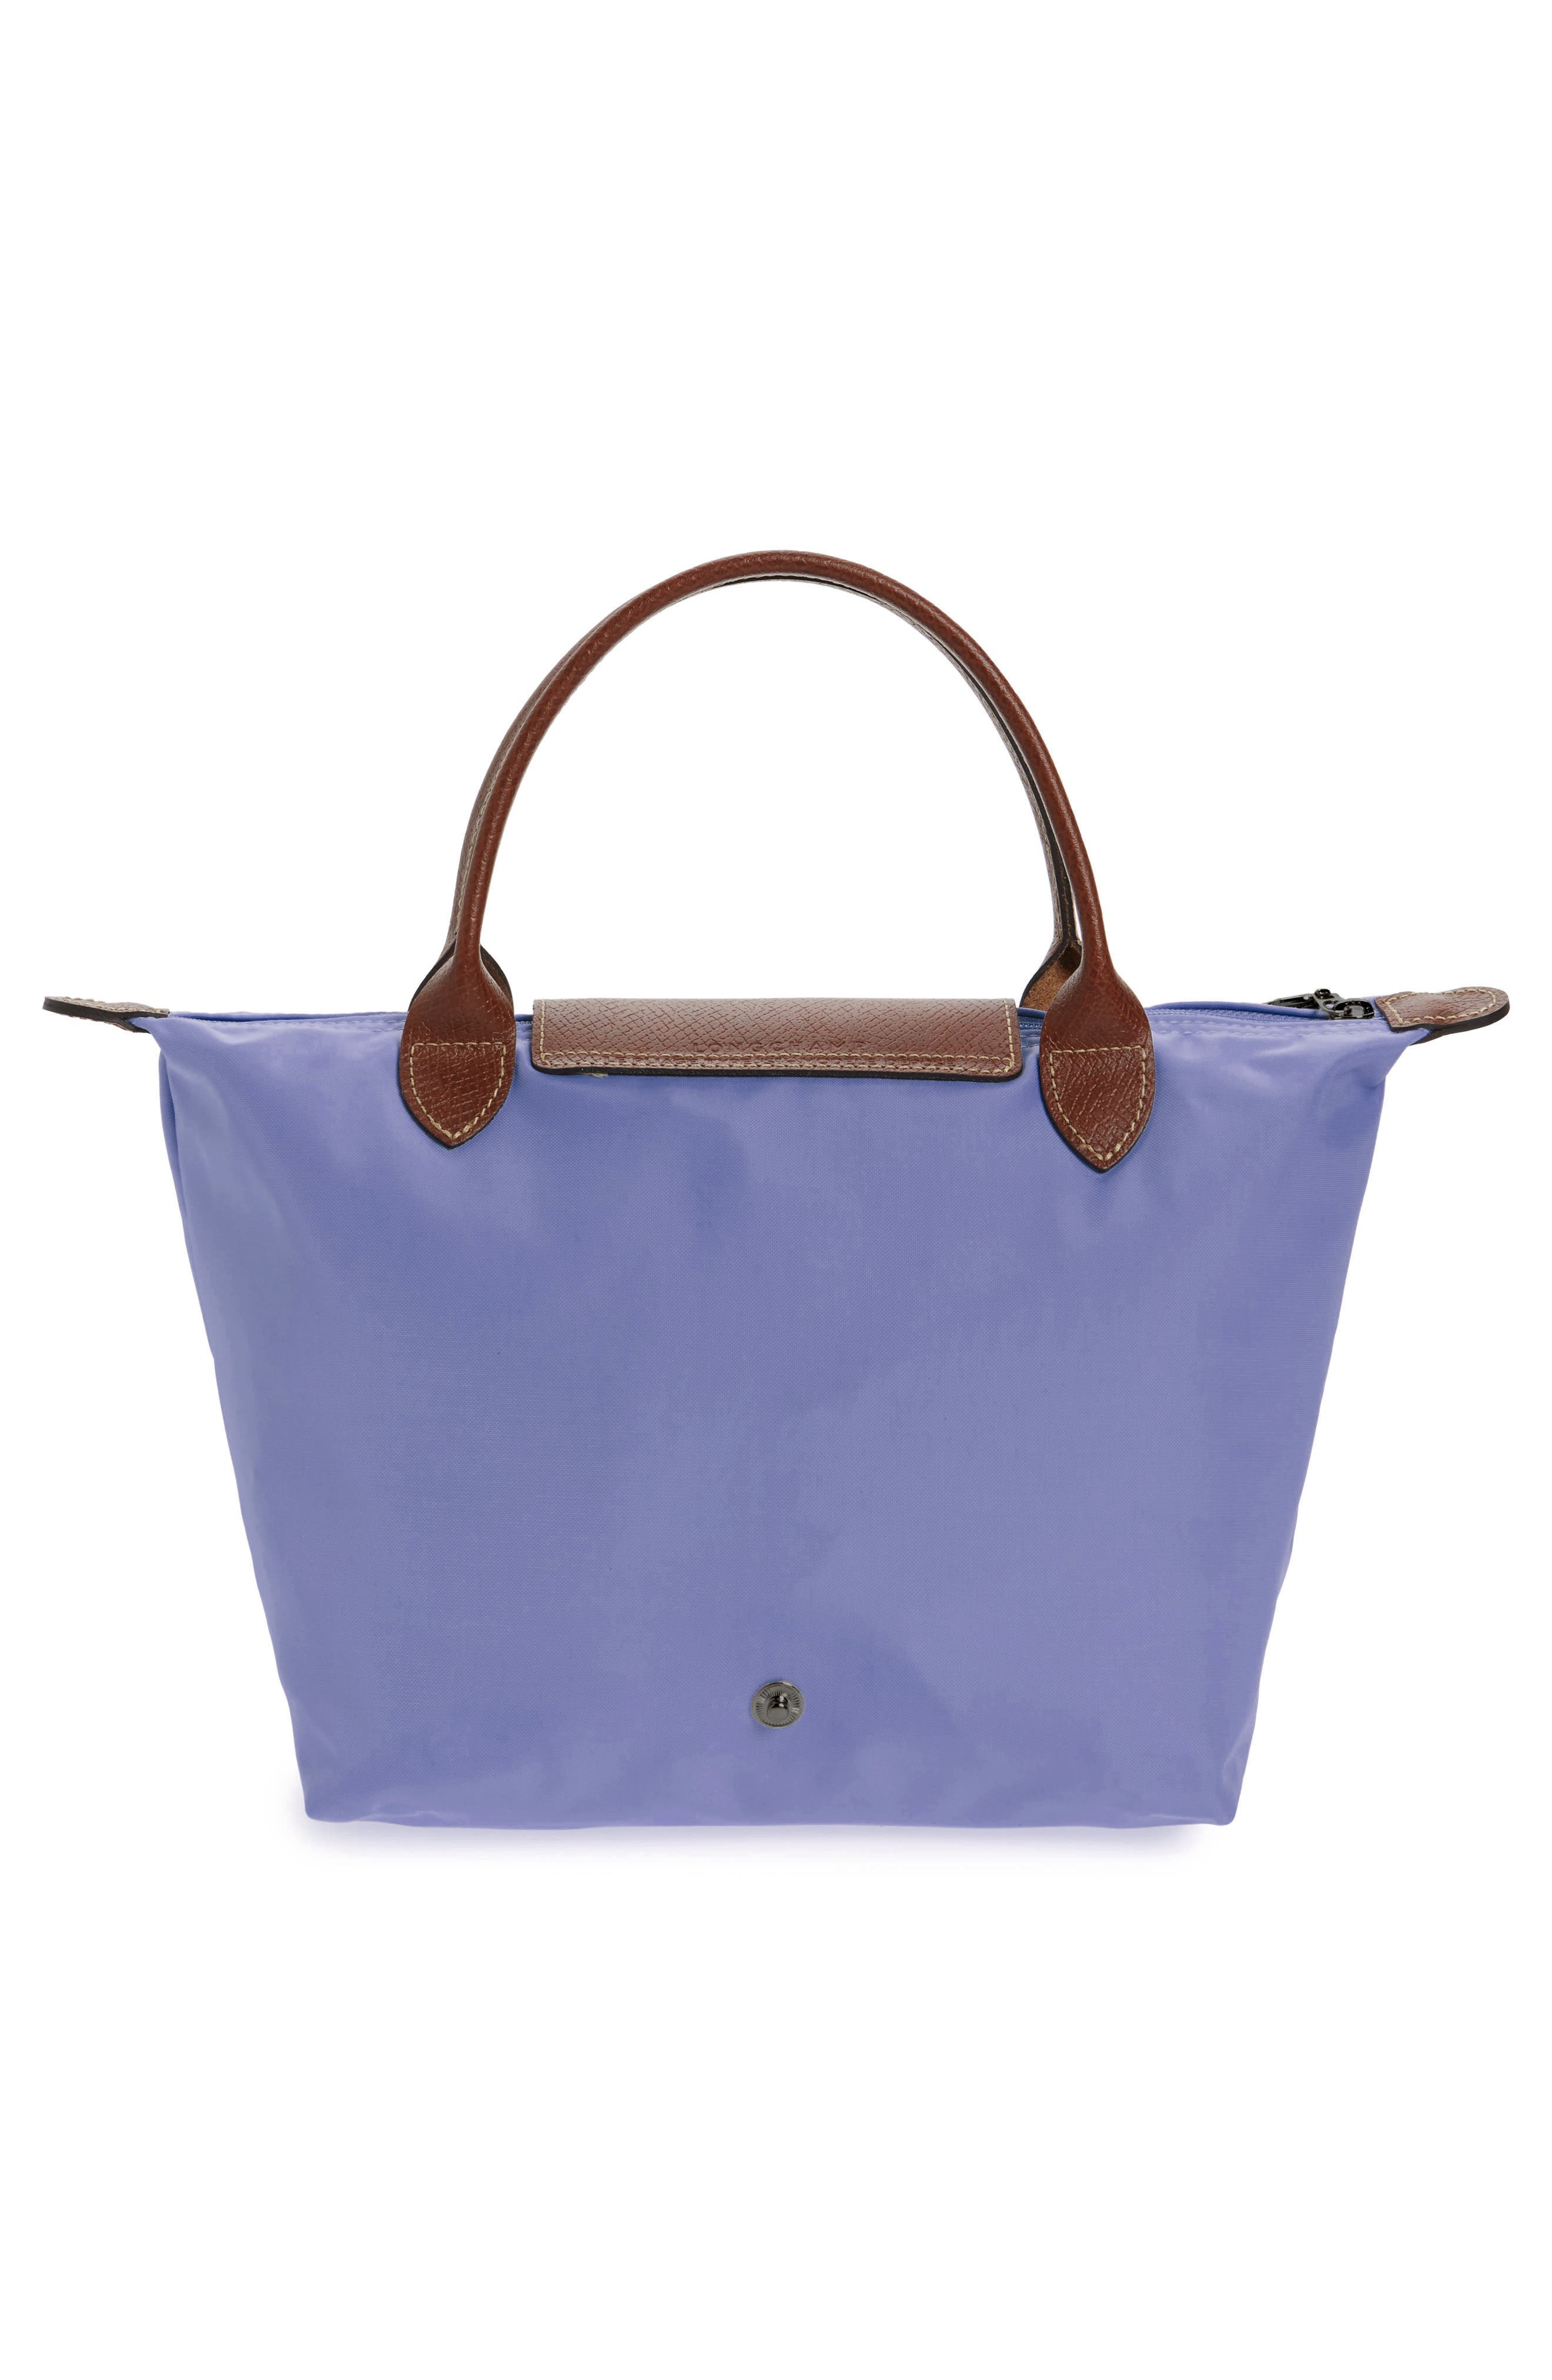 'Small Le Pliage' Top Handle Tote,                             Alternate thumbnail 3, color,                             Lavender